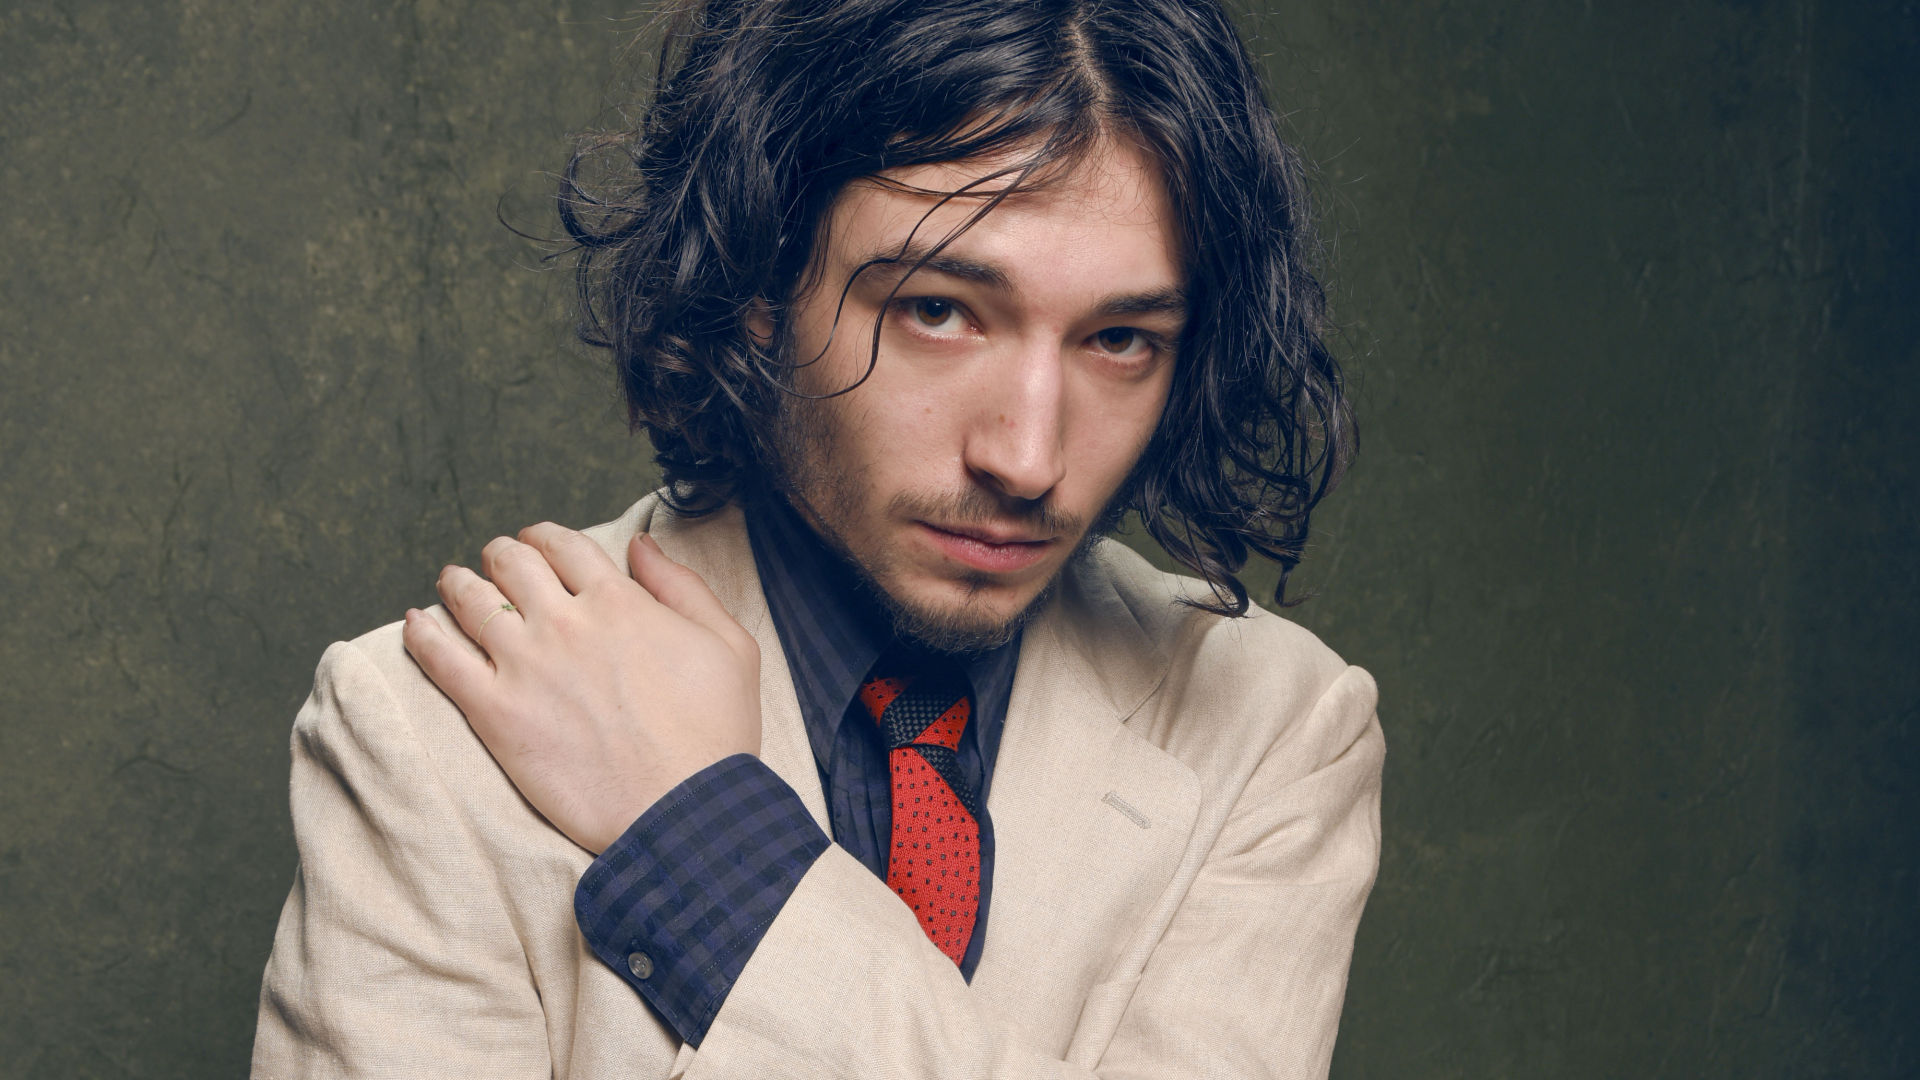 ezra miller suit widescreen desktop wallpaper 1543